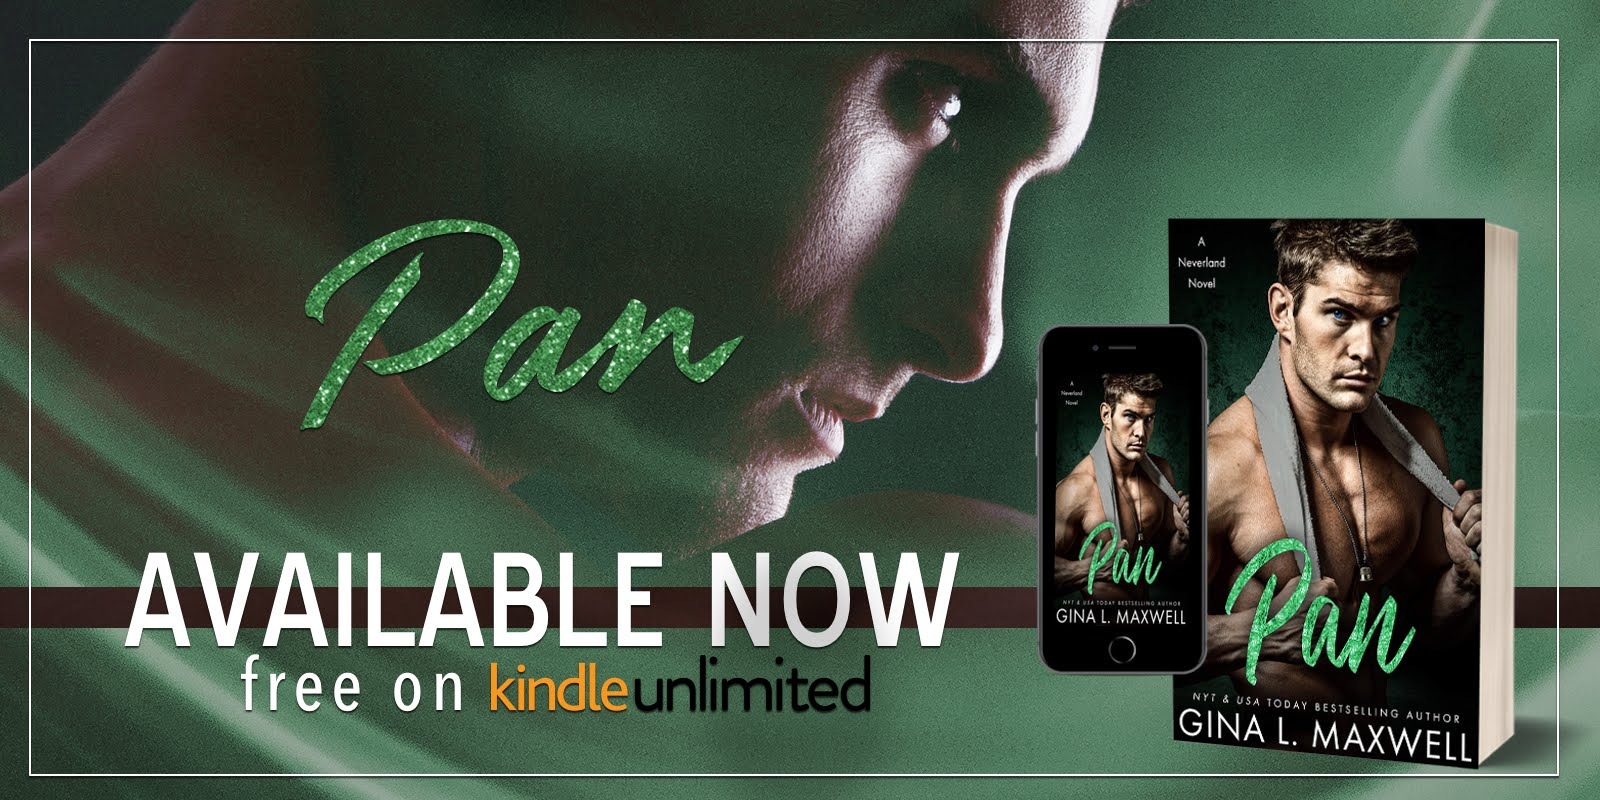 Pan by Gina L. Maxwell available now!